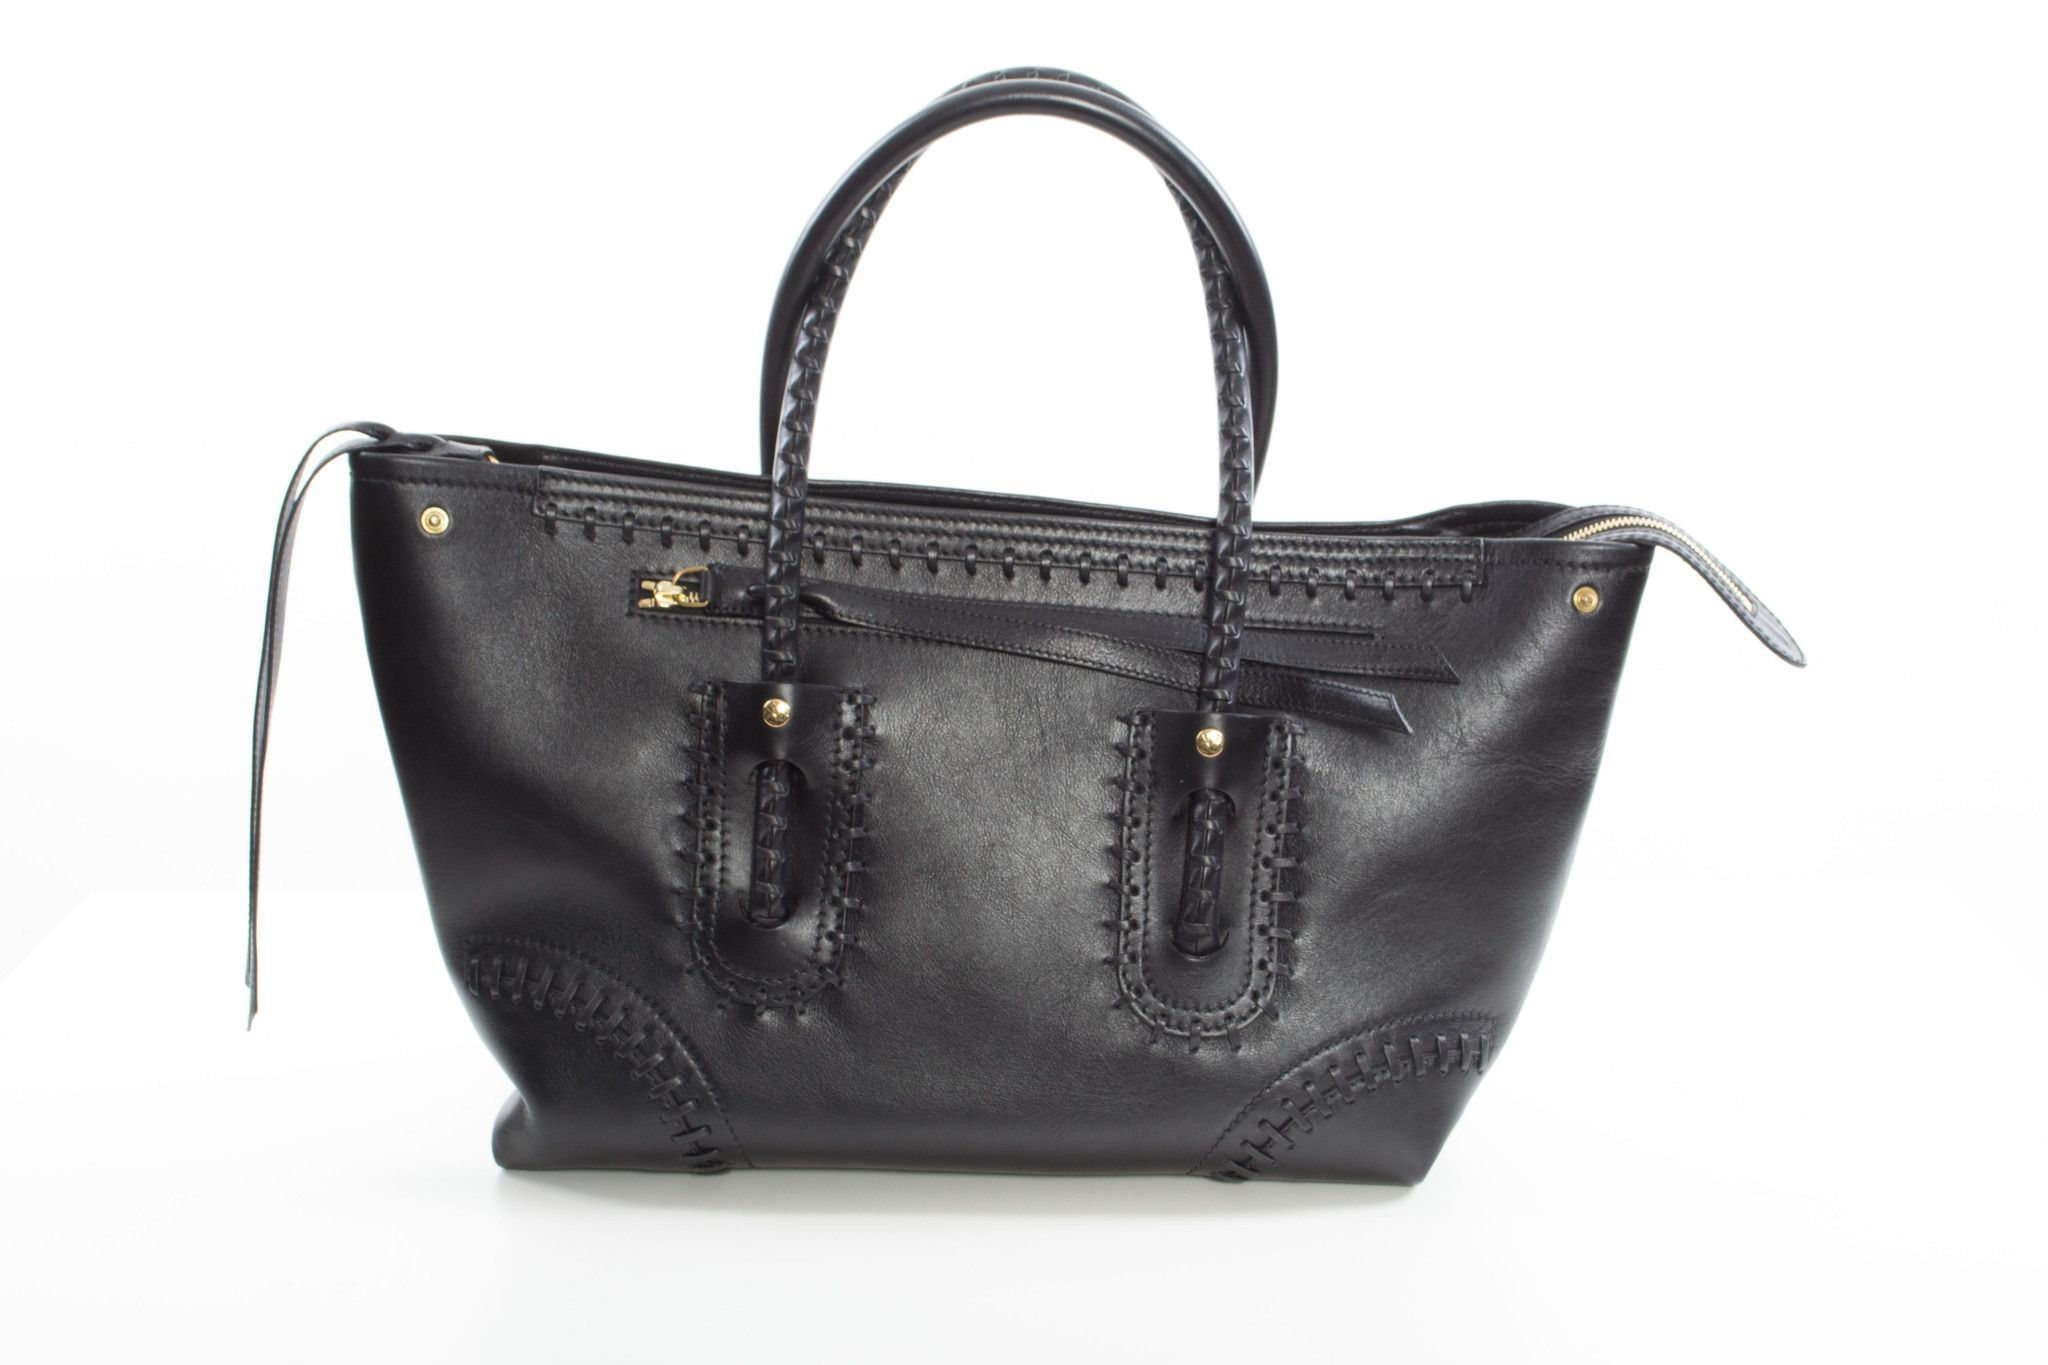 Black leather tote with whip stitch detail